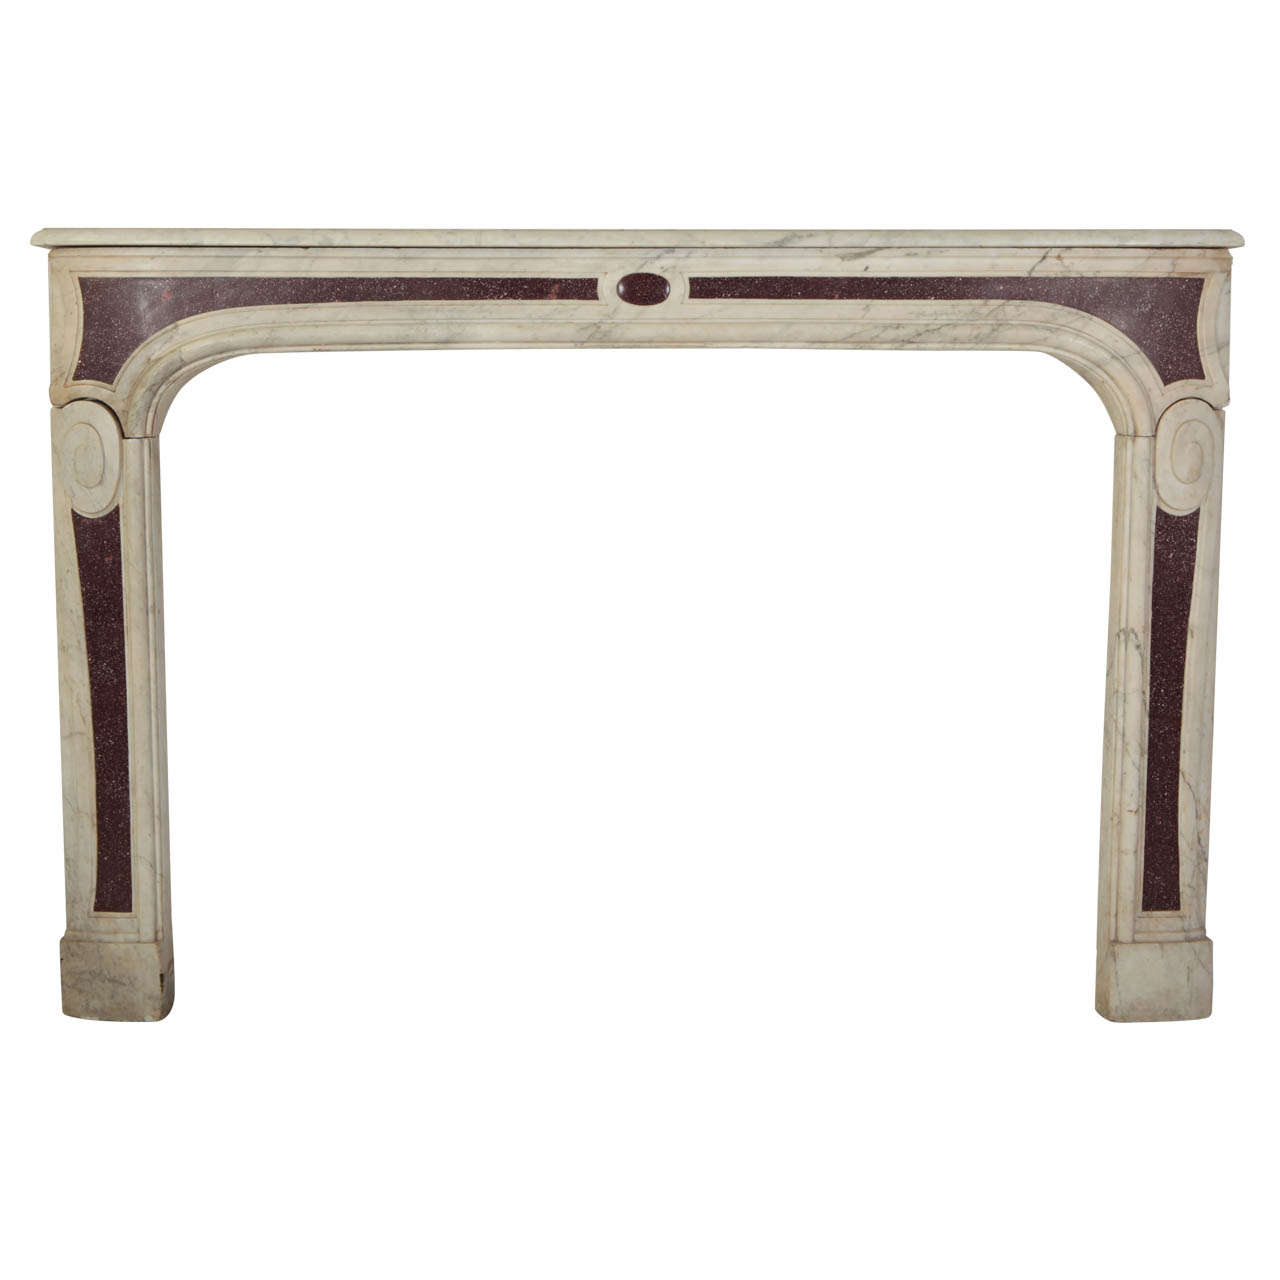 18th Century Louis XVI French White Marble Fireplace with Porphyry Insert